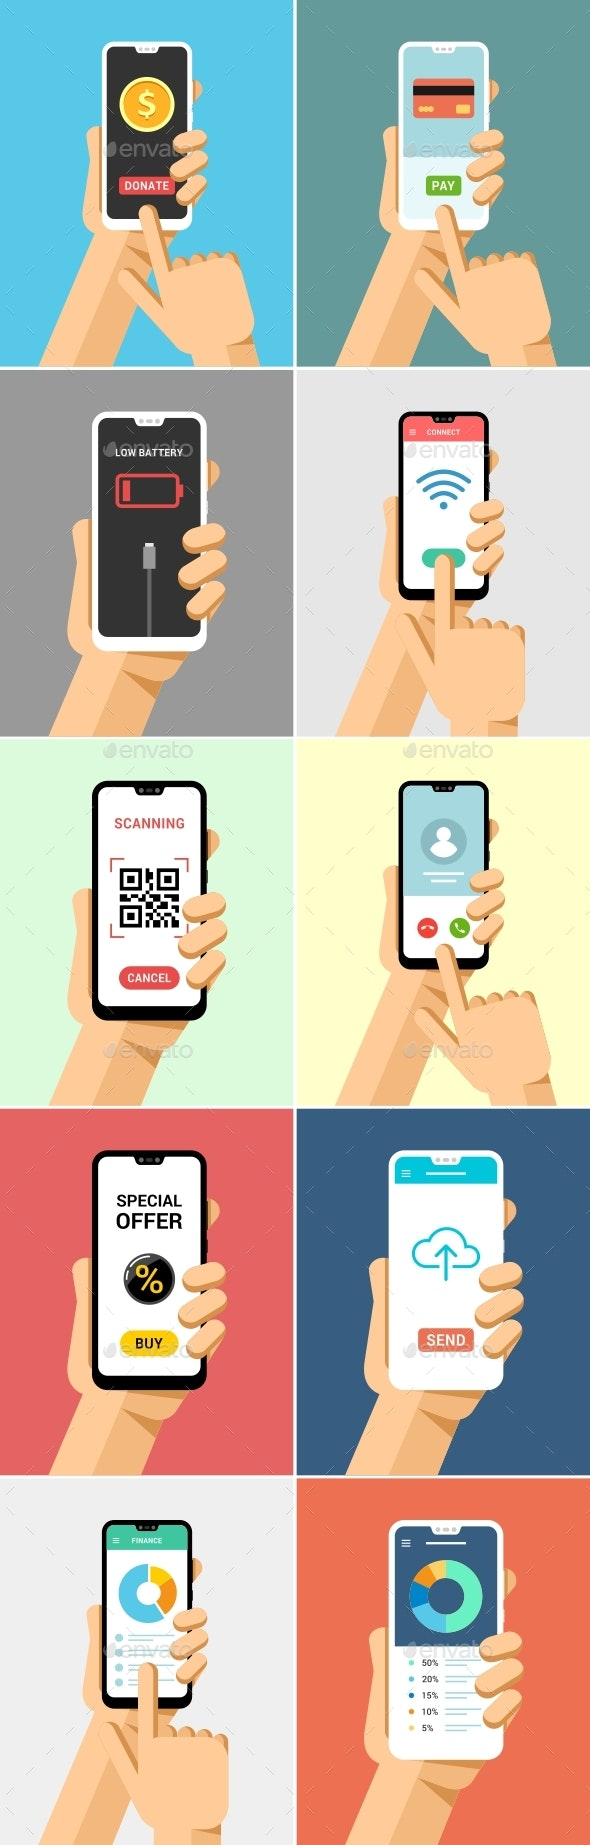 Phone in Hand Mock-Up Flat Vector Set 2 - Communications Technology